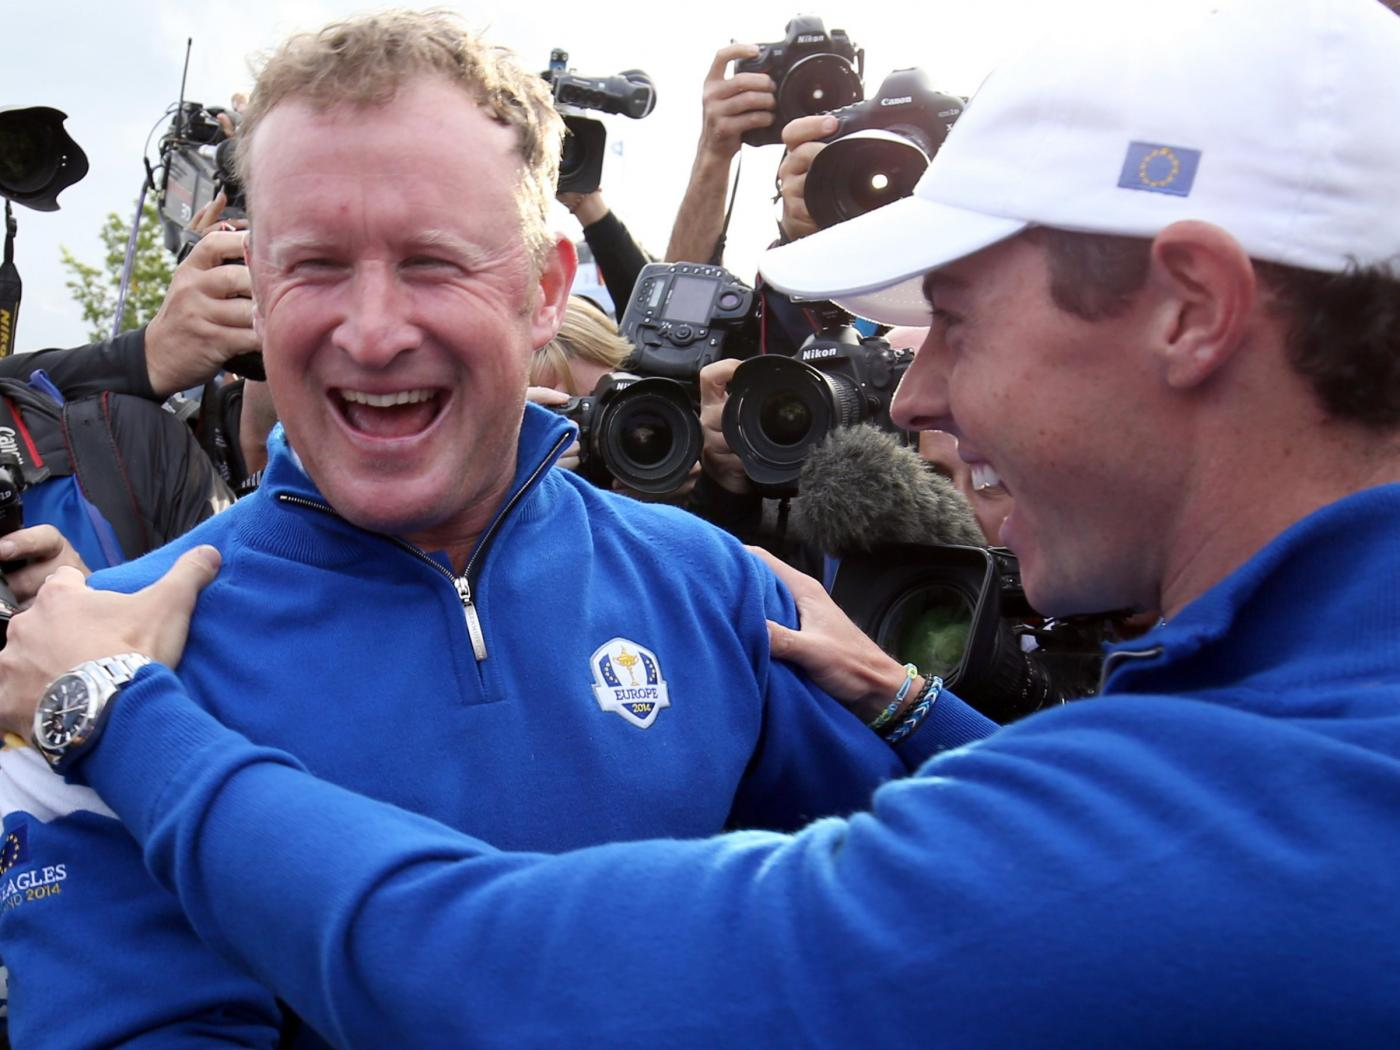 Golf, Ryder Cup 2014 all'Europa 16 1/2 – 11 1/2 sugli USA